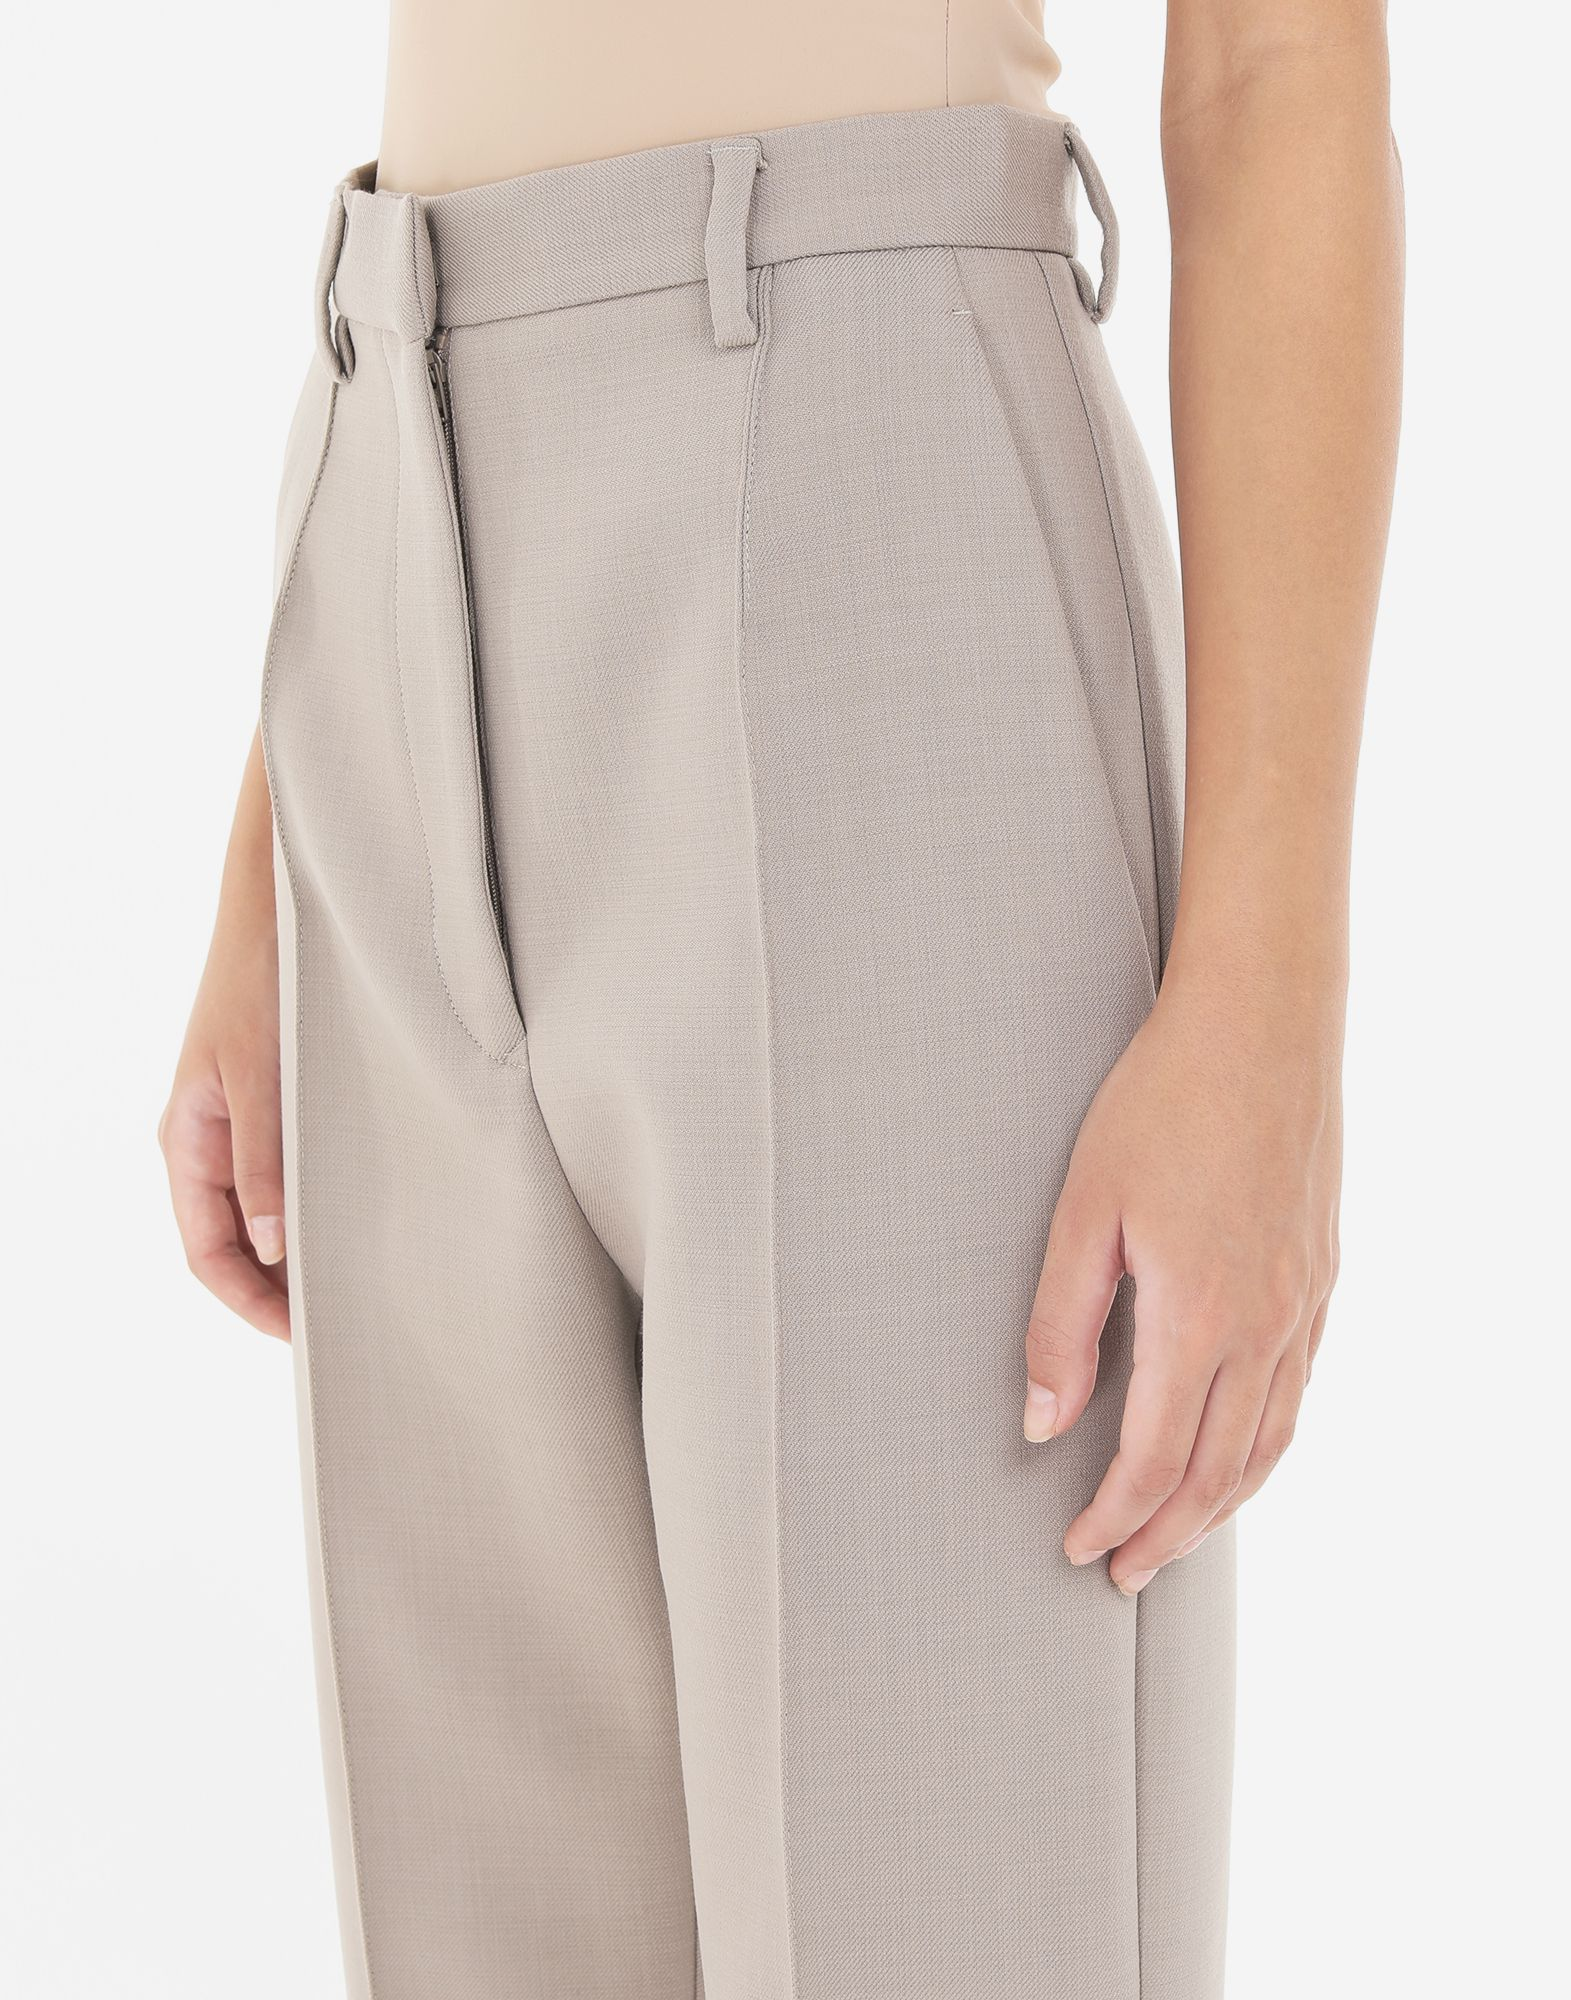 MM6 MAISON MARGIELA Tailored trousers Trousers Woman a